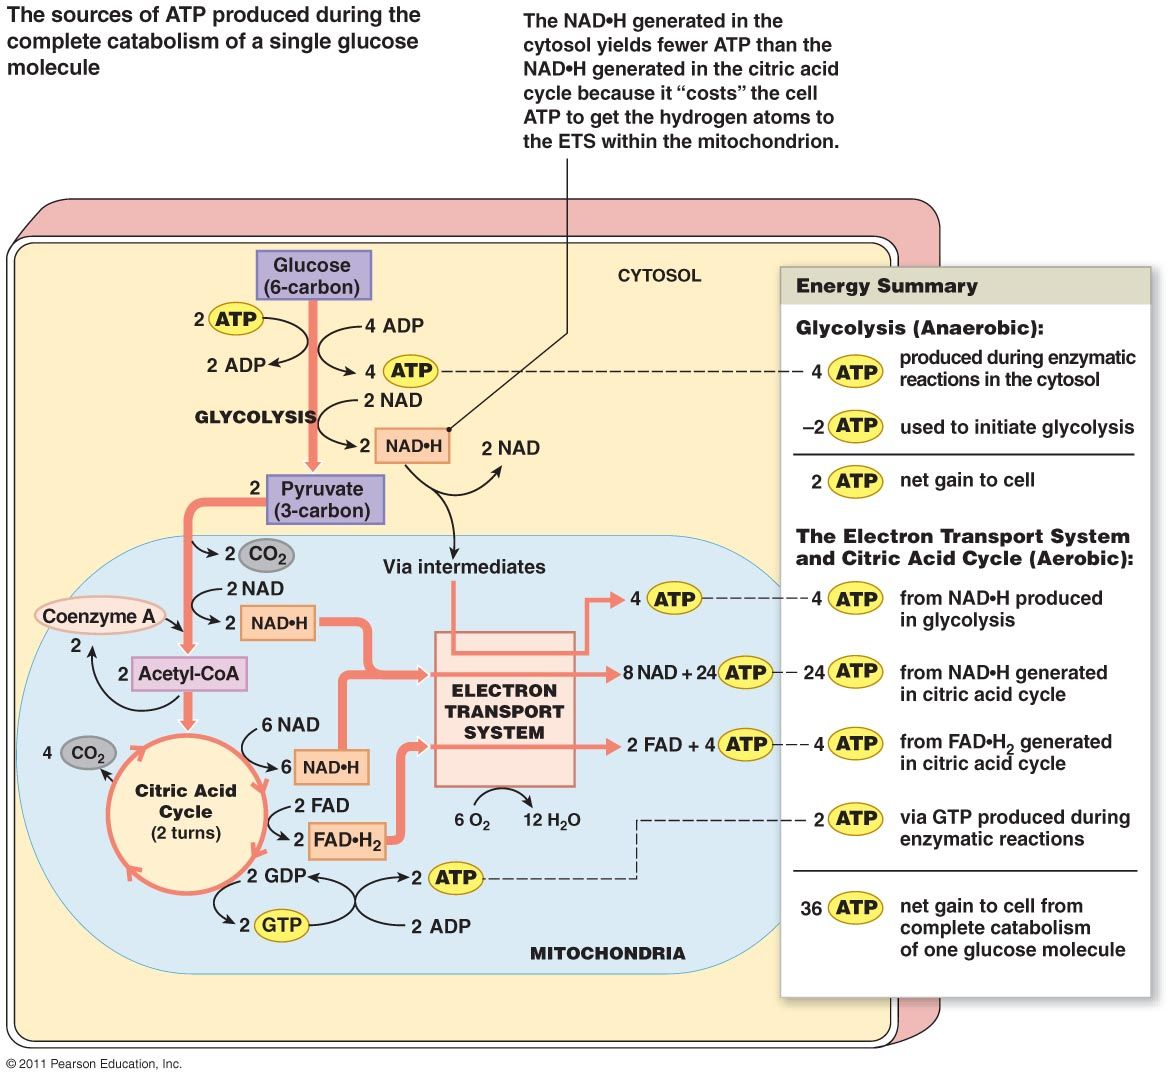 glycolysis and krebs cycle diagram 700r4 converter lockup wiring glucose metabolism